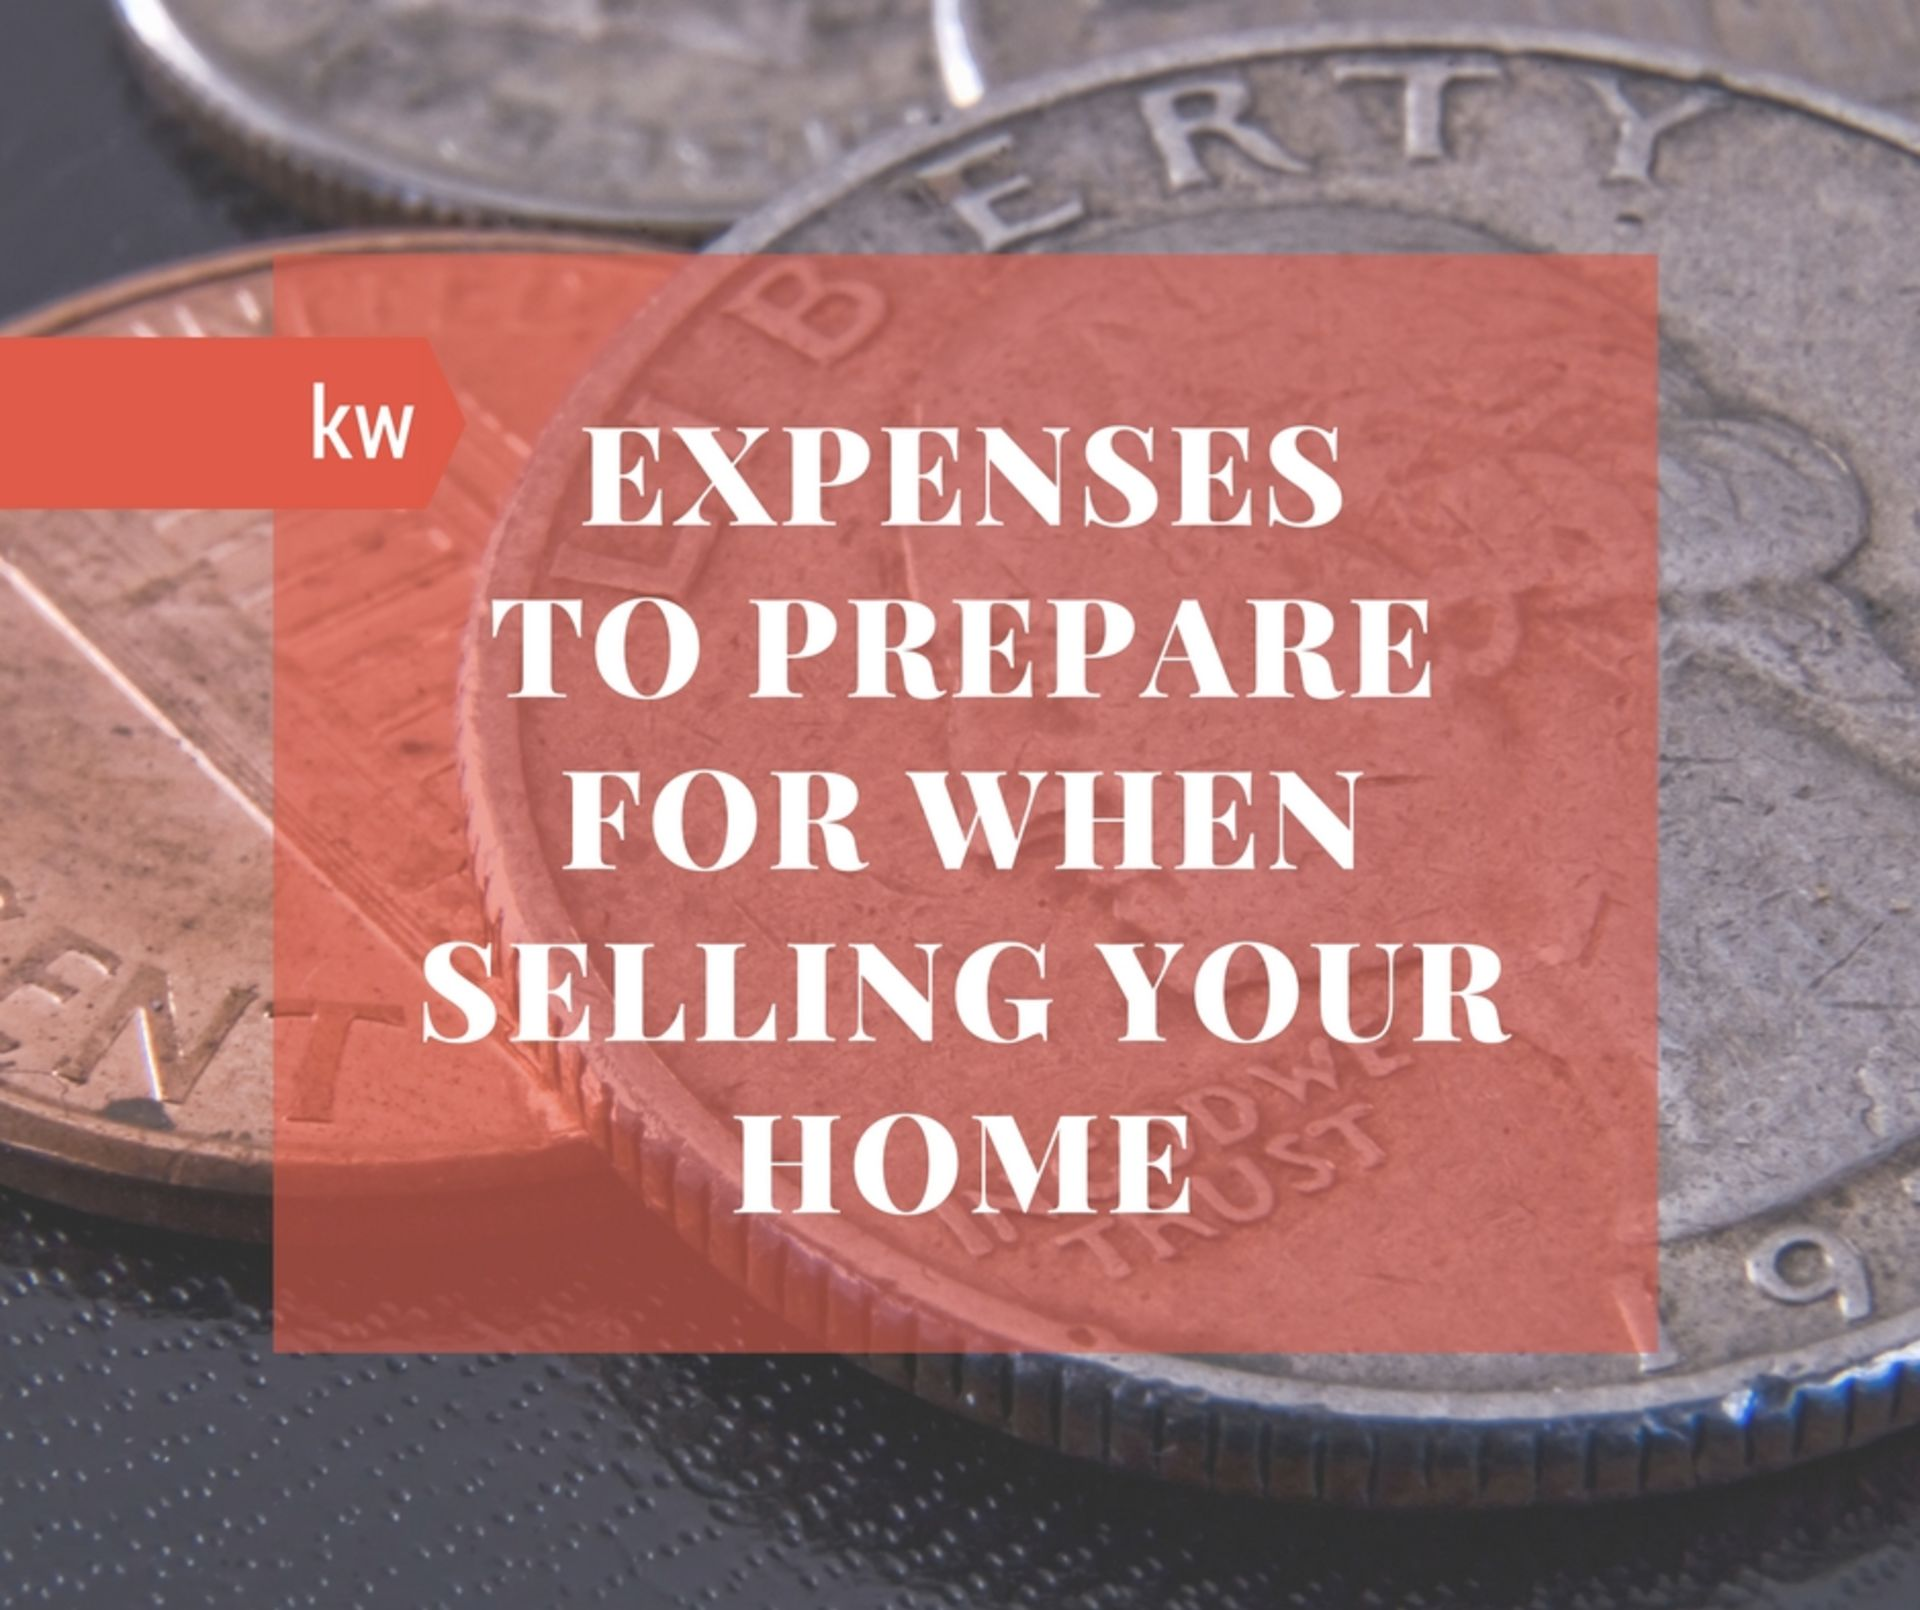 Expenses to Prepare for When Selling Your Home